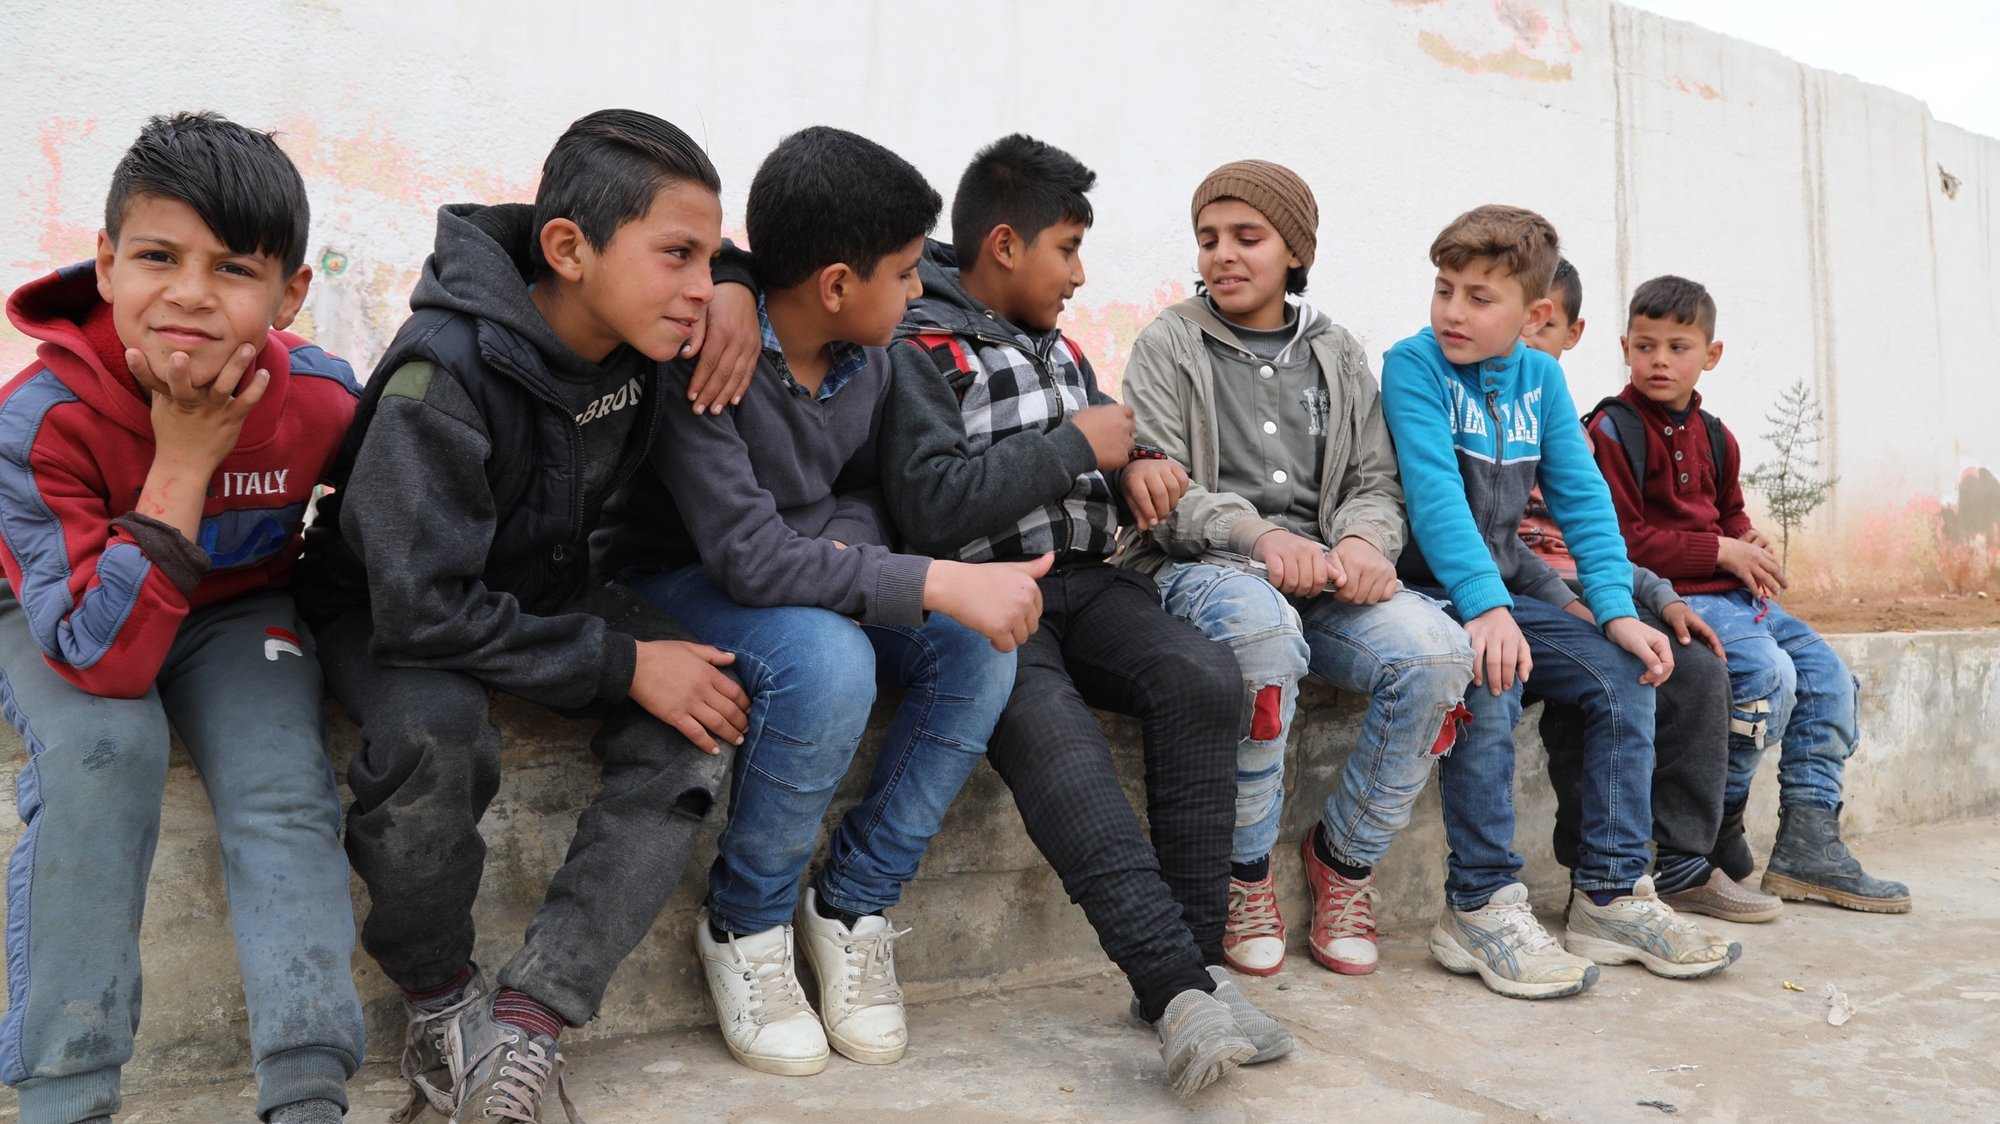 epa07493223 Omar (C), a nine-year-old boy who lost his right leg in a mine explosion, sits with is friends at his school in Raqqa city, northeastern Syria, 01 April 2019 (issued 09 April 2019). The battle of liberation Raqqa from the control of the so-called Islamic State (IS or ISIL or Daesh) group has left at least 1,130 civilians have been killed and another 3,000 people wounded, human rights organizations said.  EPA/AHMED MARDNLI